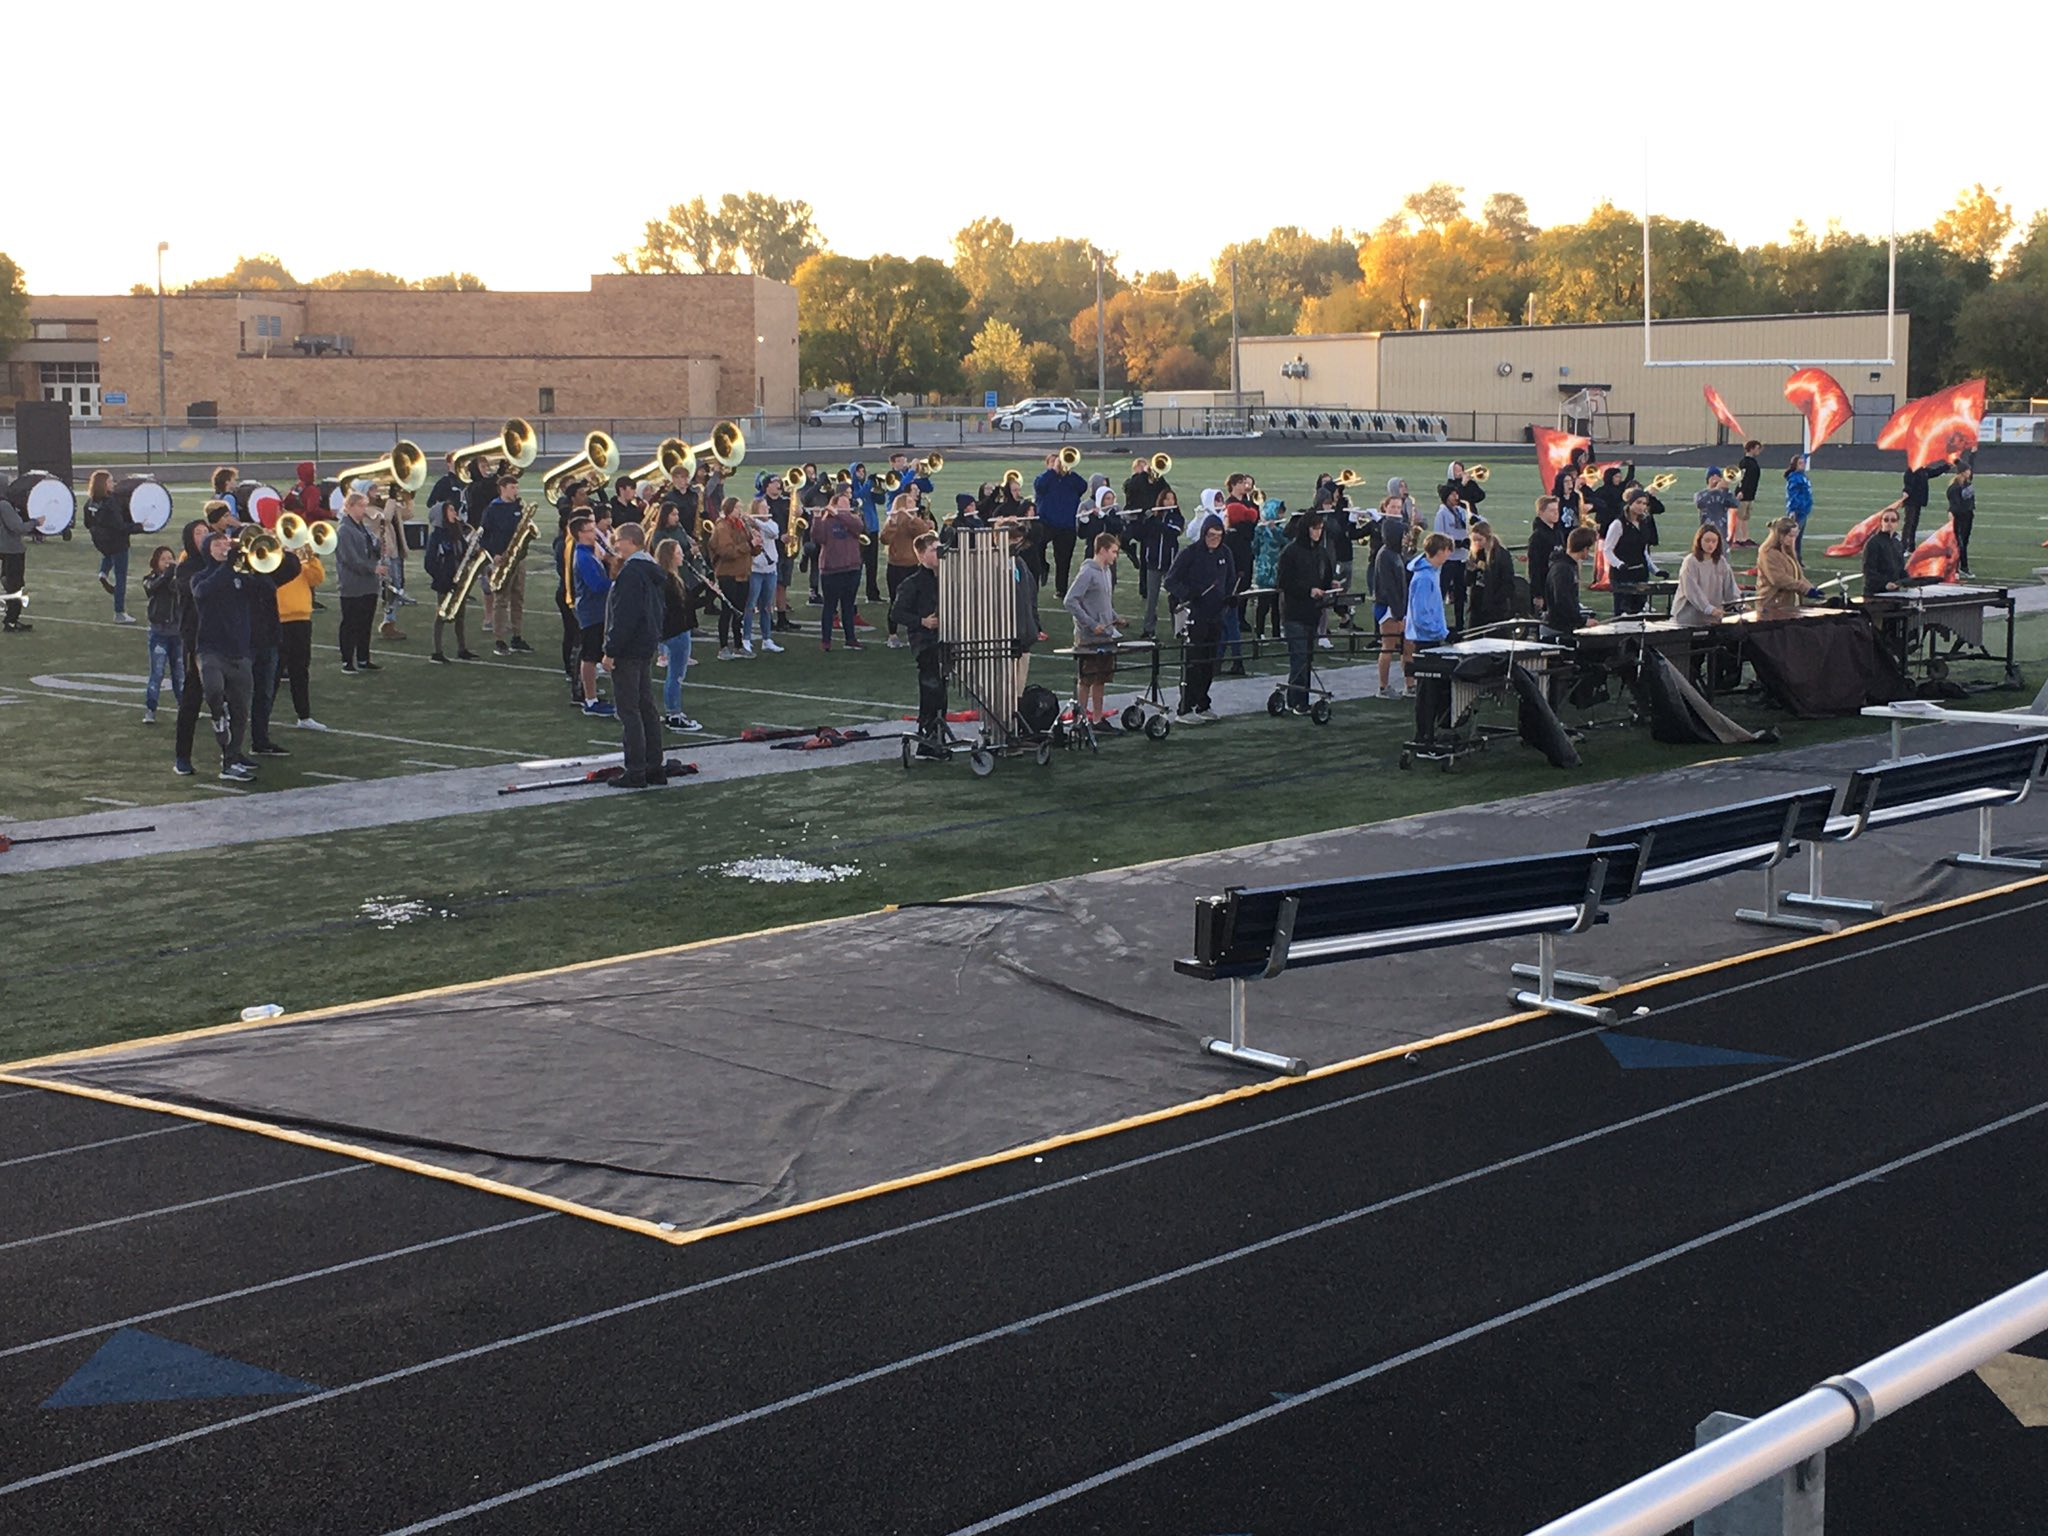 The @LCHSBands sounding good this morning at the Titan Marching Band Rehearsal. Their hard work has paid off as they have enjoyed much success at competitions including a 1st Place win last weekend! Way to go Titan Bands! #InspiringExcellenceLC @LCHSPrincipals @LewisCentralCSD https://t.co/0Pit3XHoLo